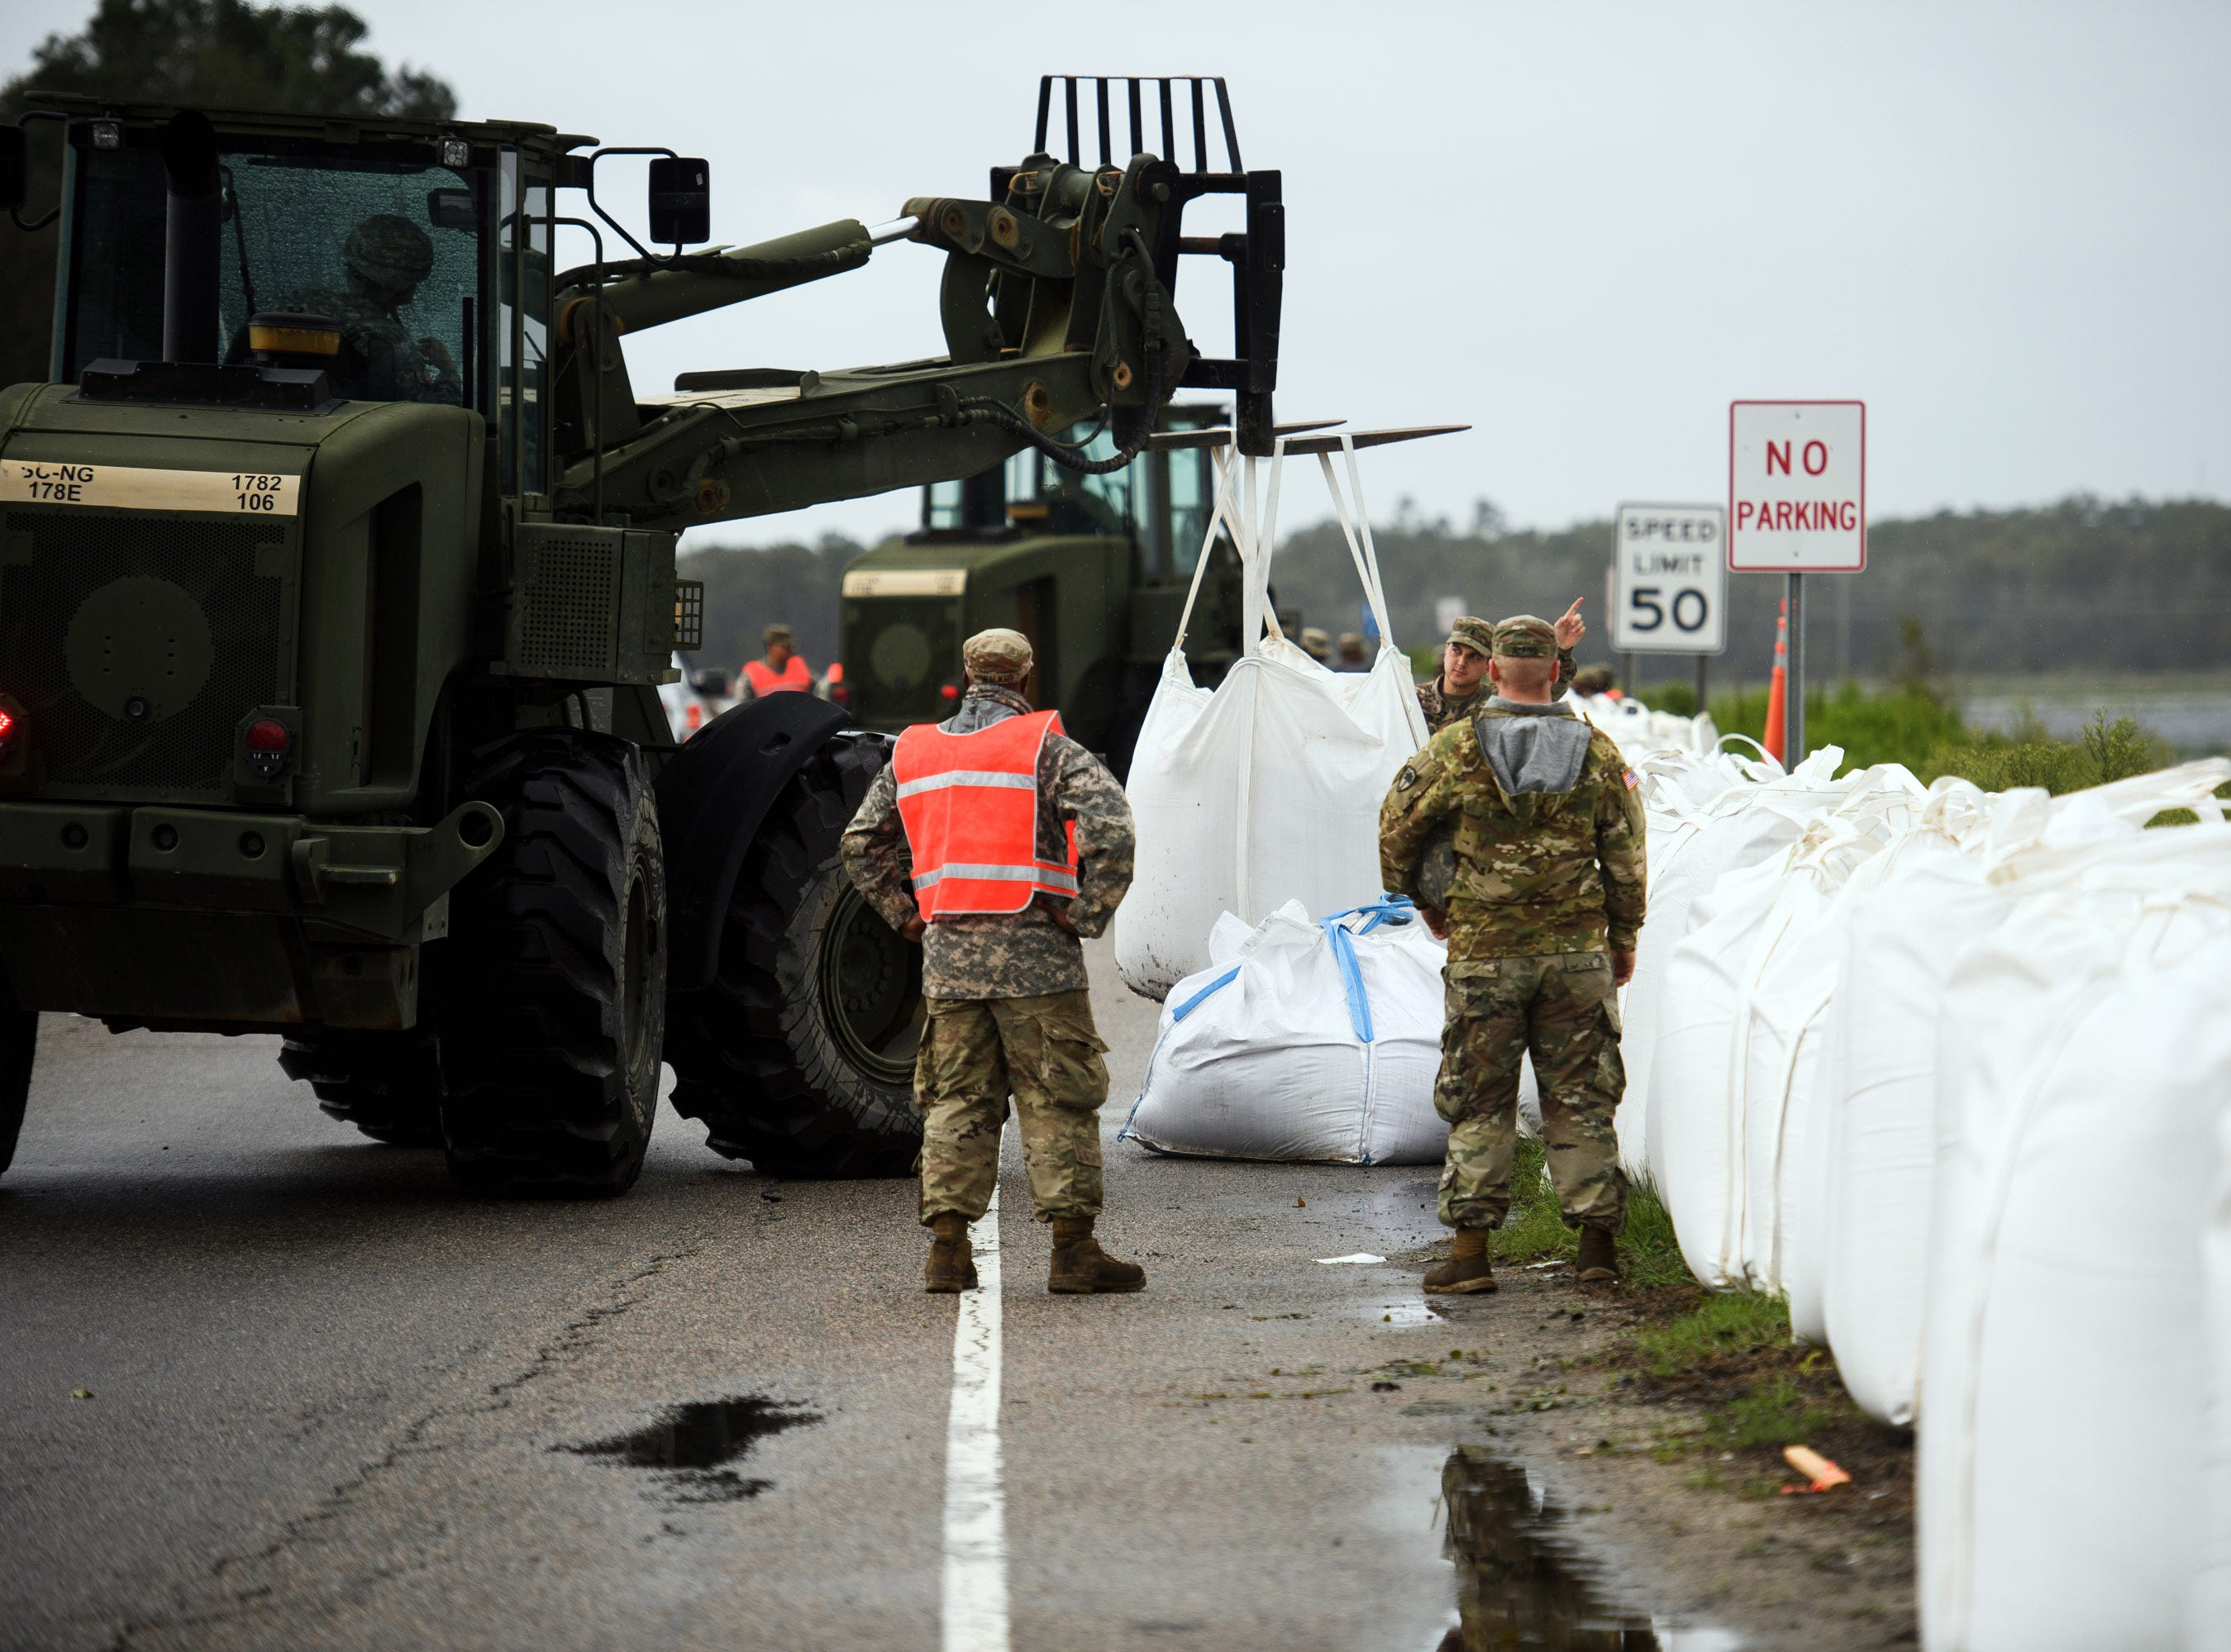 Sept 16, 2018, North Myrtle Beach, SC, Engineering units of the South Carolina Army National Guard lay down sand bags along U.S. 501 South just outside of Conway in preparation of rising water levels on the Waccamaw River due to Tropical Depression Florence on Sunday, Sept. 16, 2018.